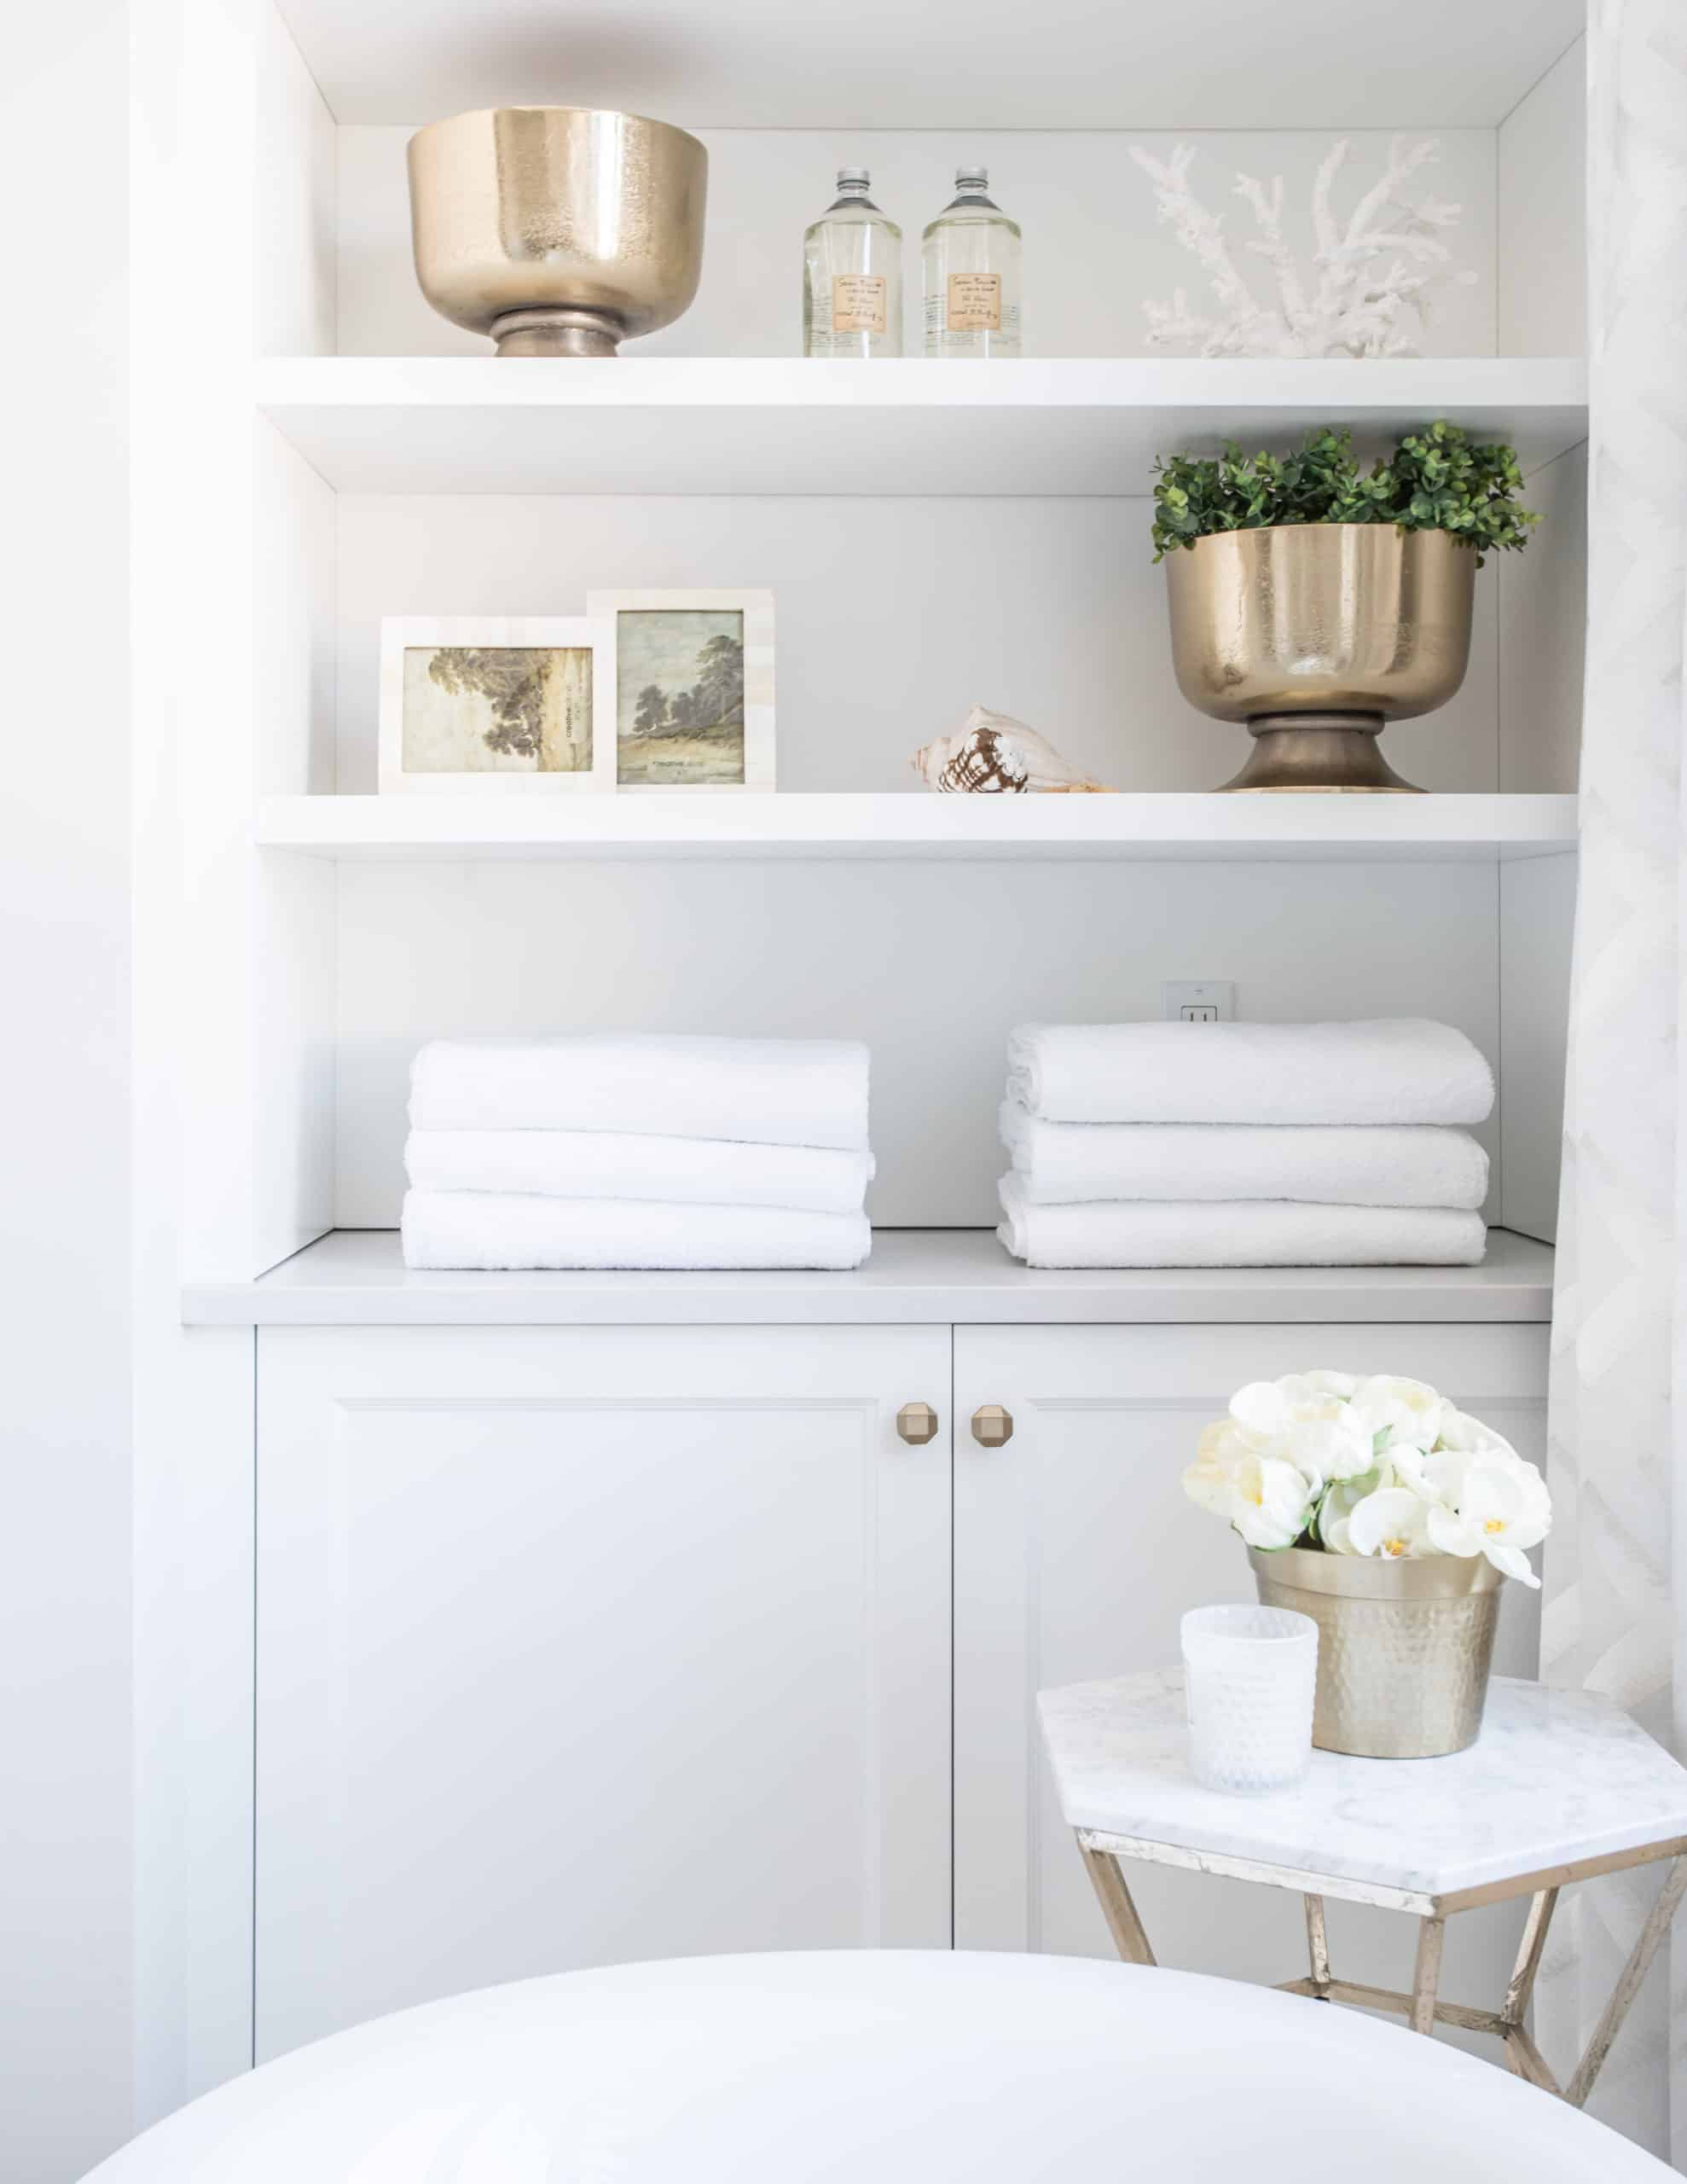 Bookshelf with white towels and decorations on it